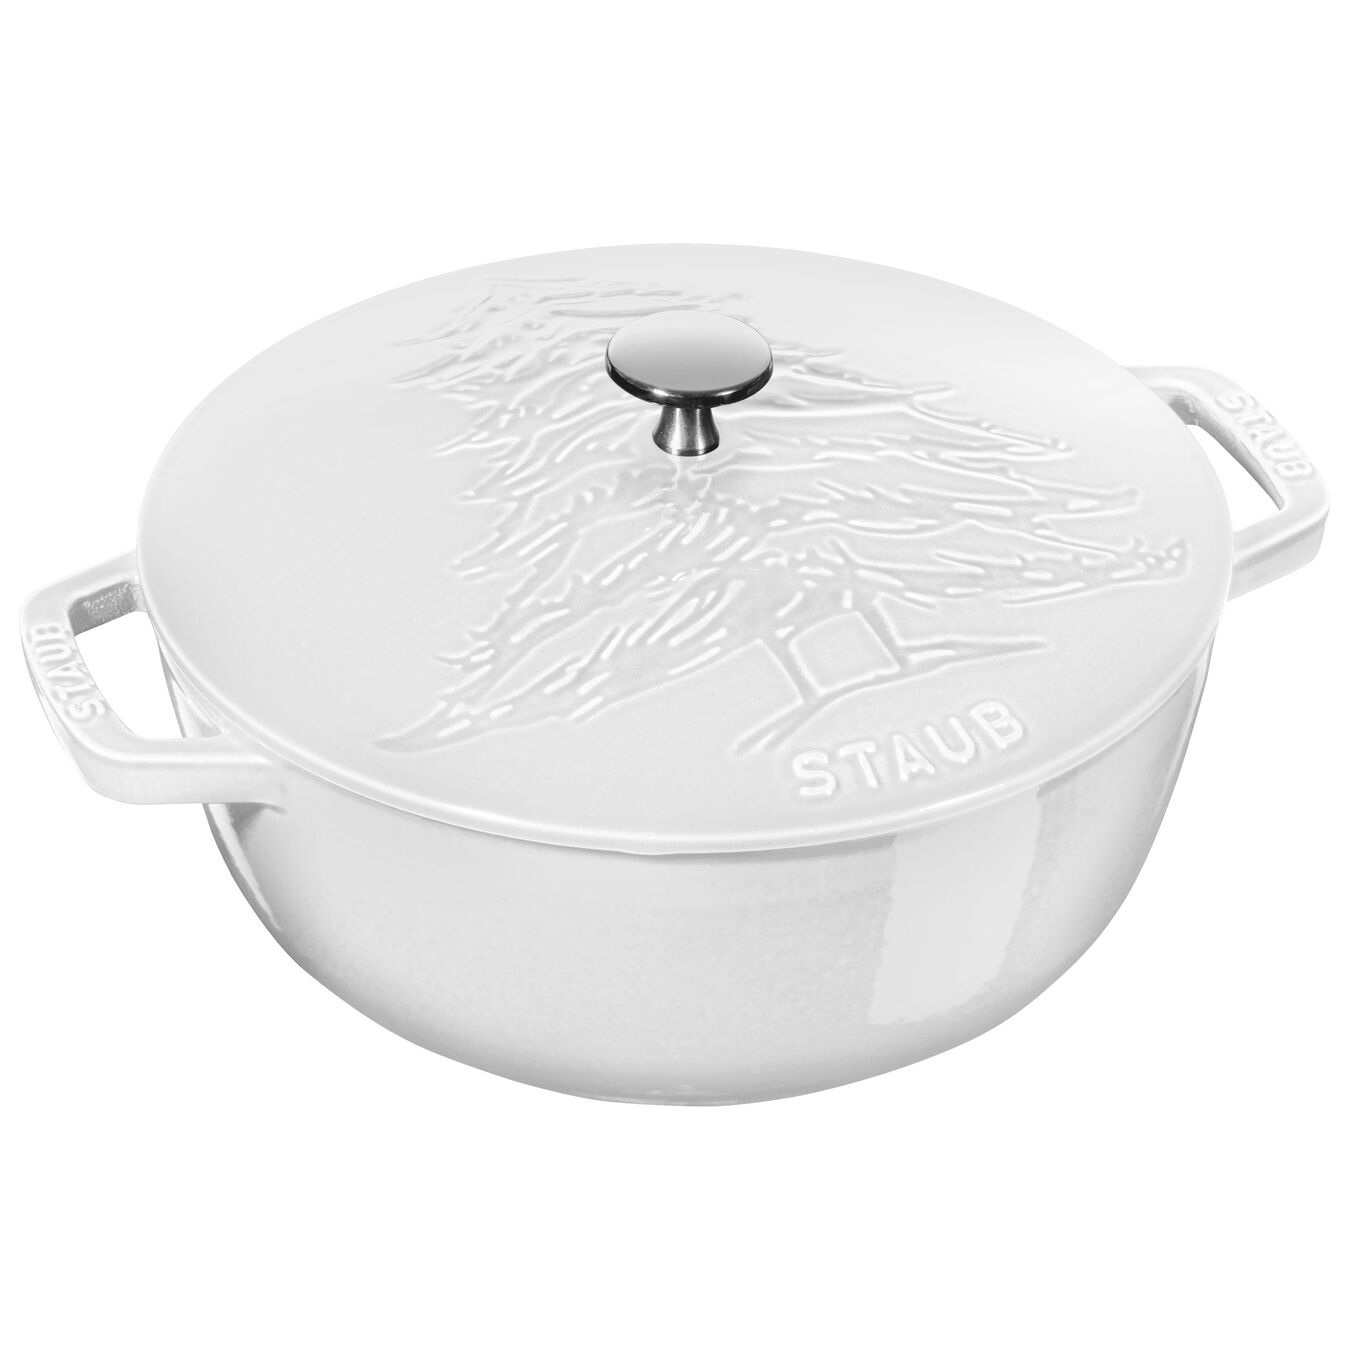 3.75 qt, French oven, White,,large 1